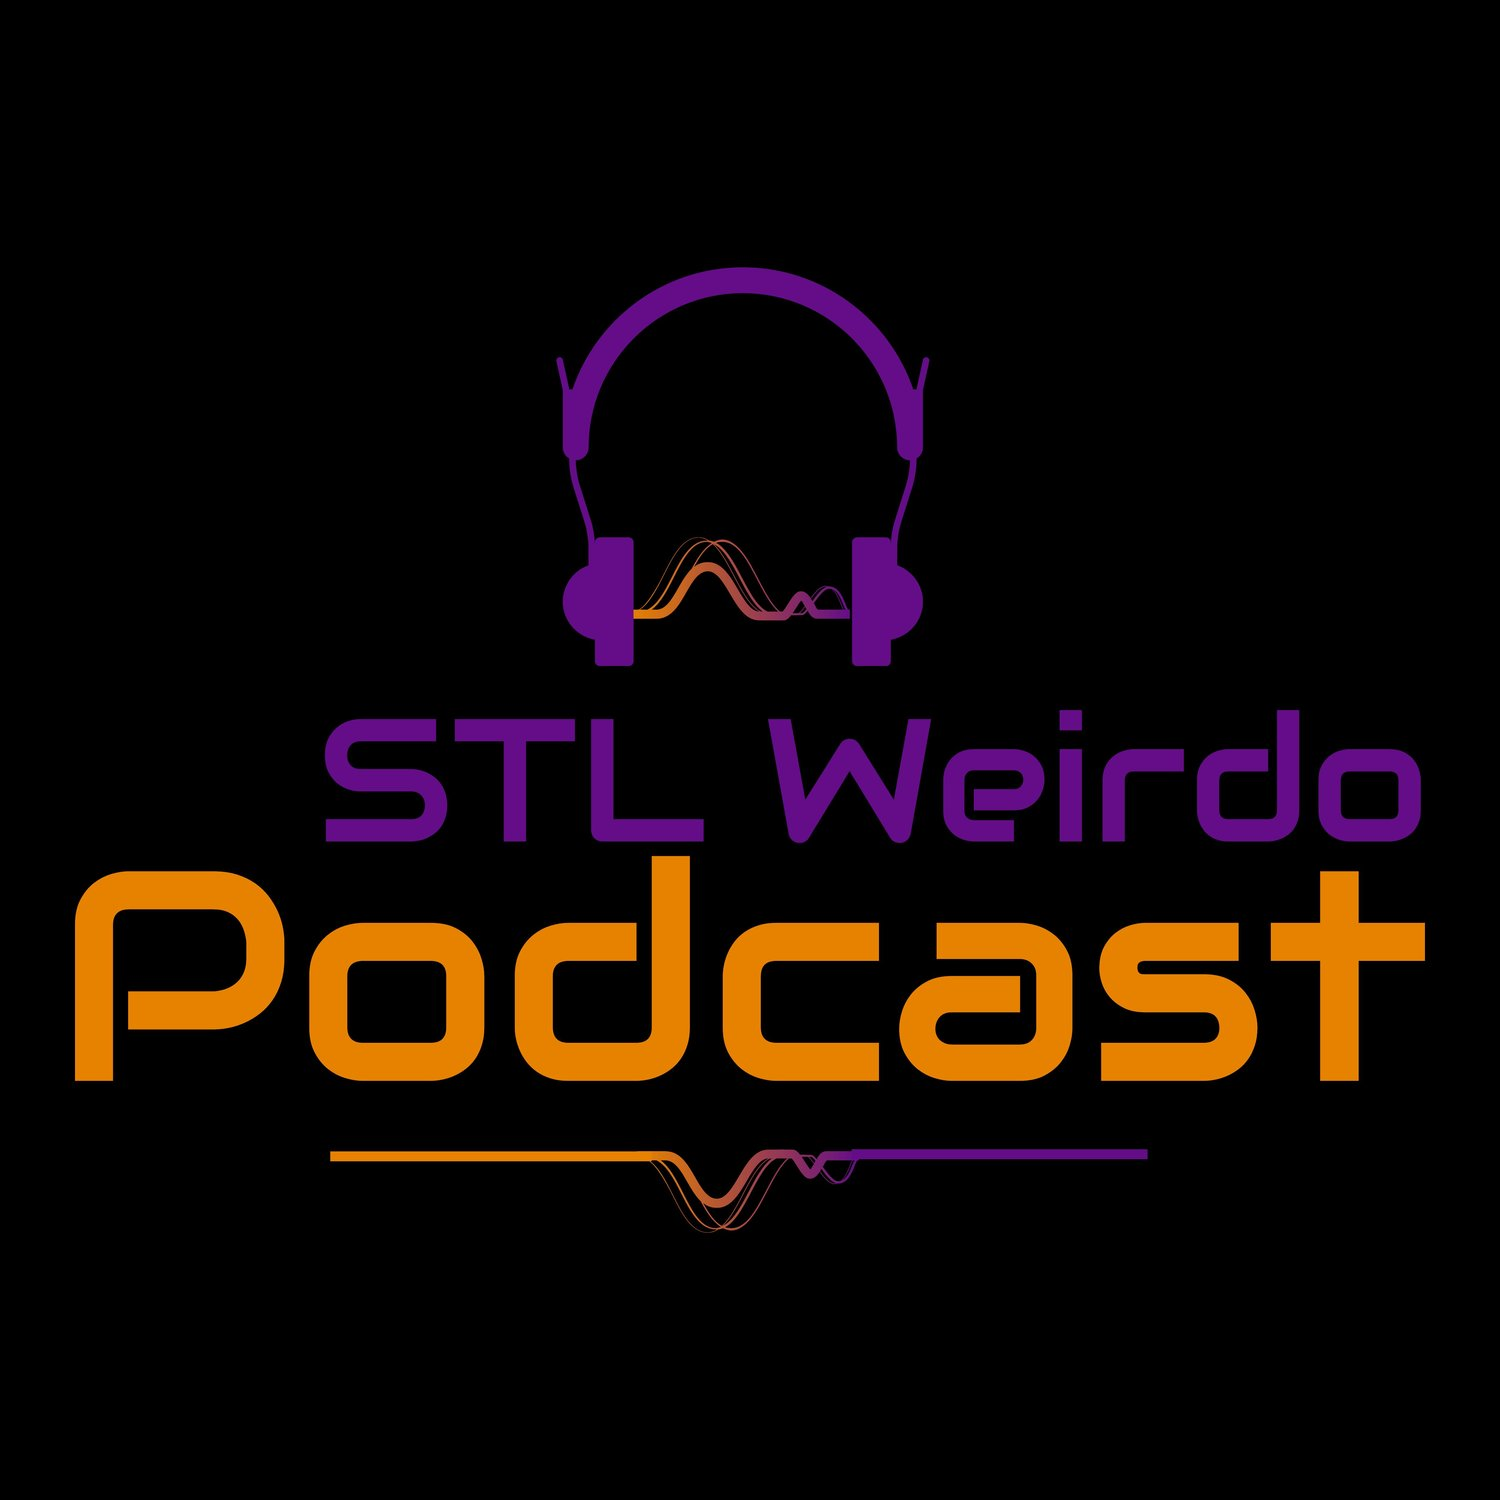 STL Weirdo Podcast